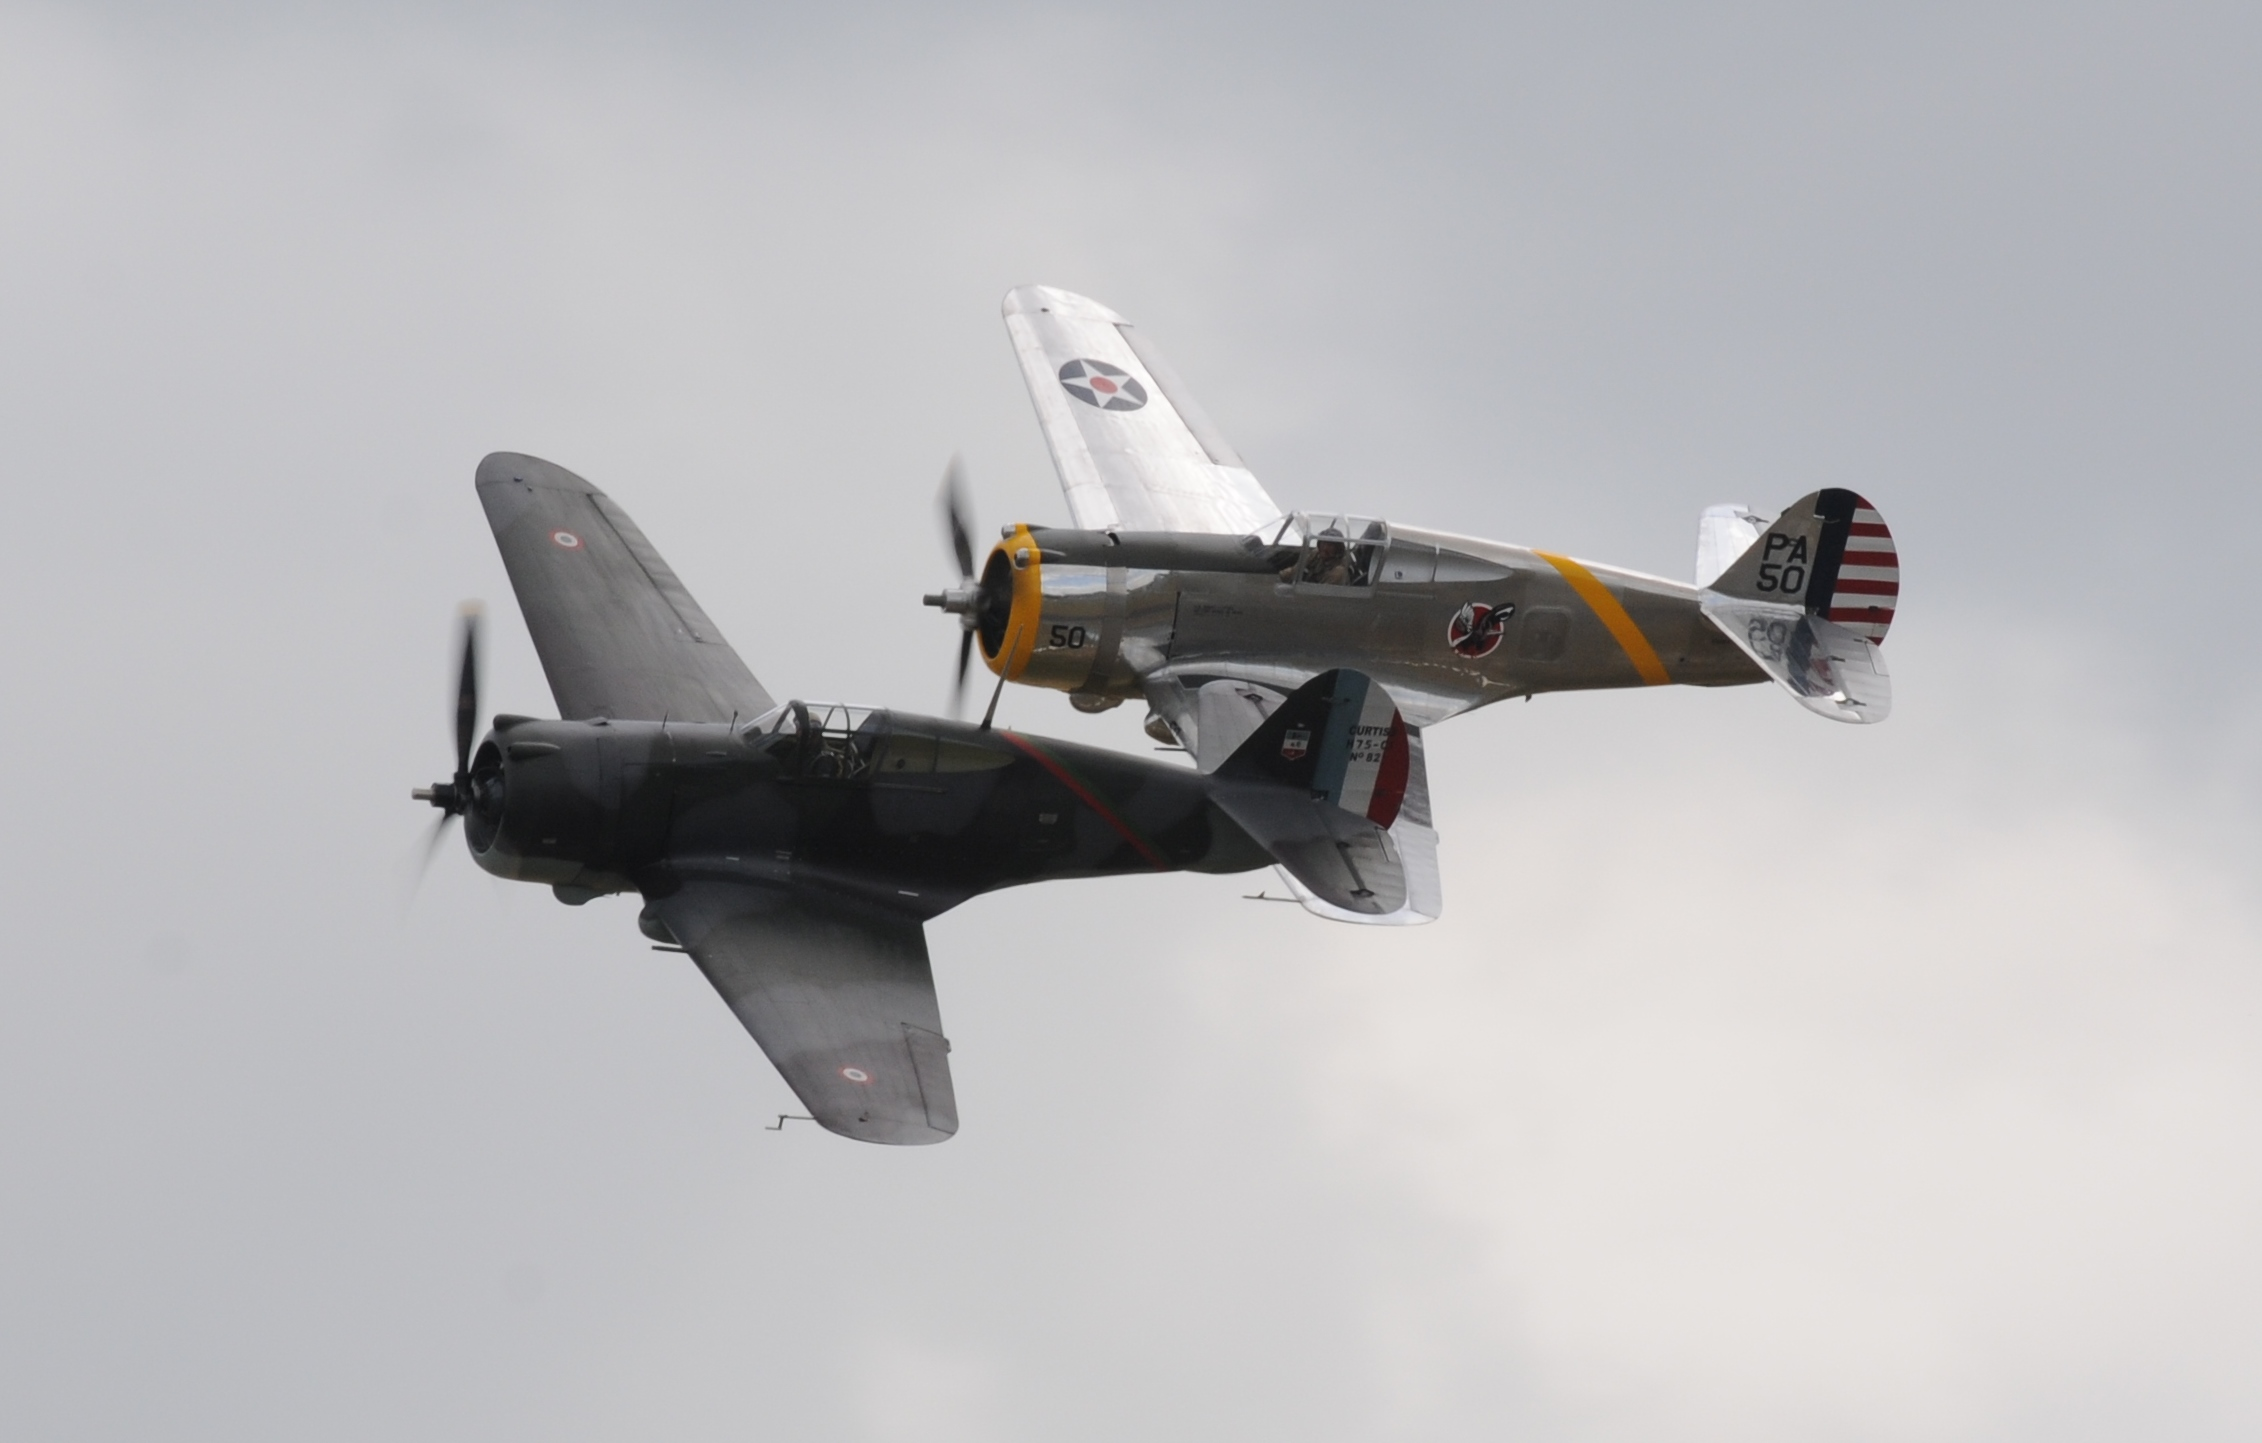 Curtiss P-36 and Hawk 75